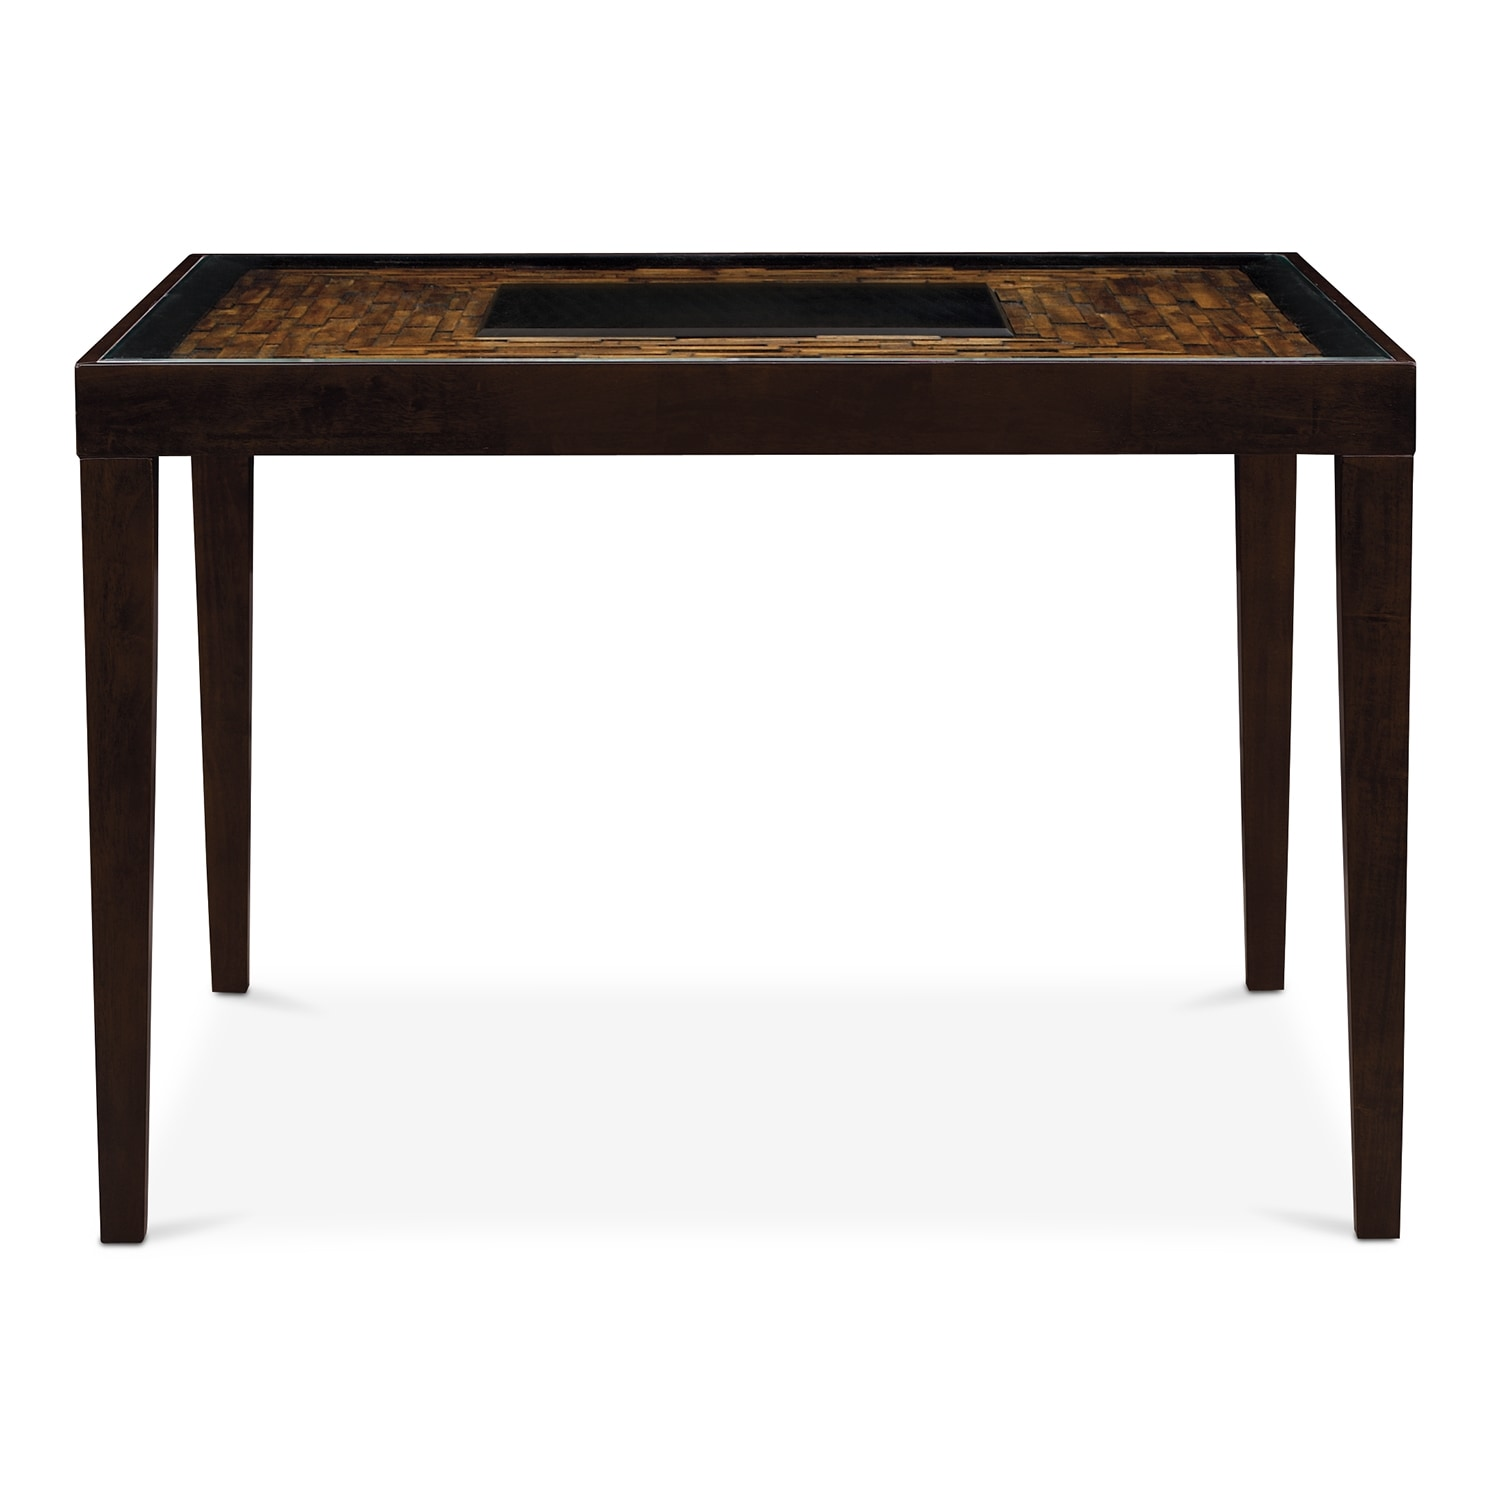 Signature Furniture Cyprus II Dining Room Counter Height Table